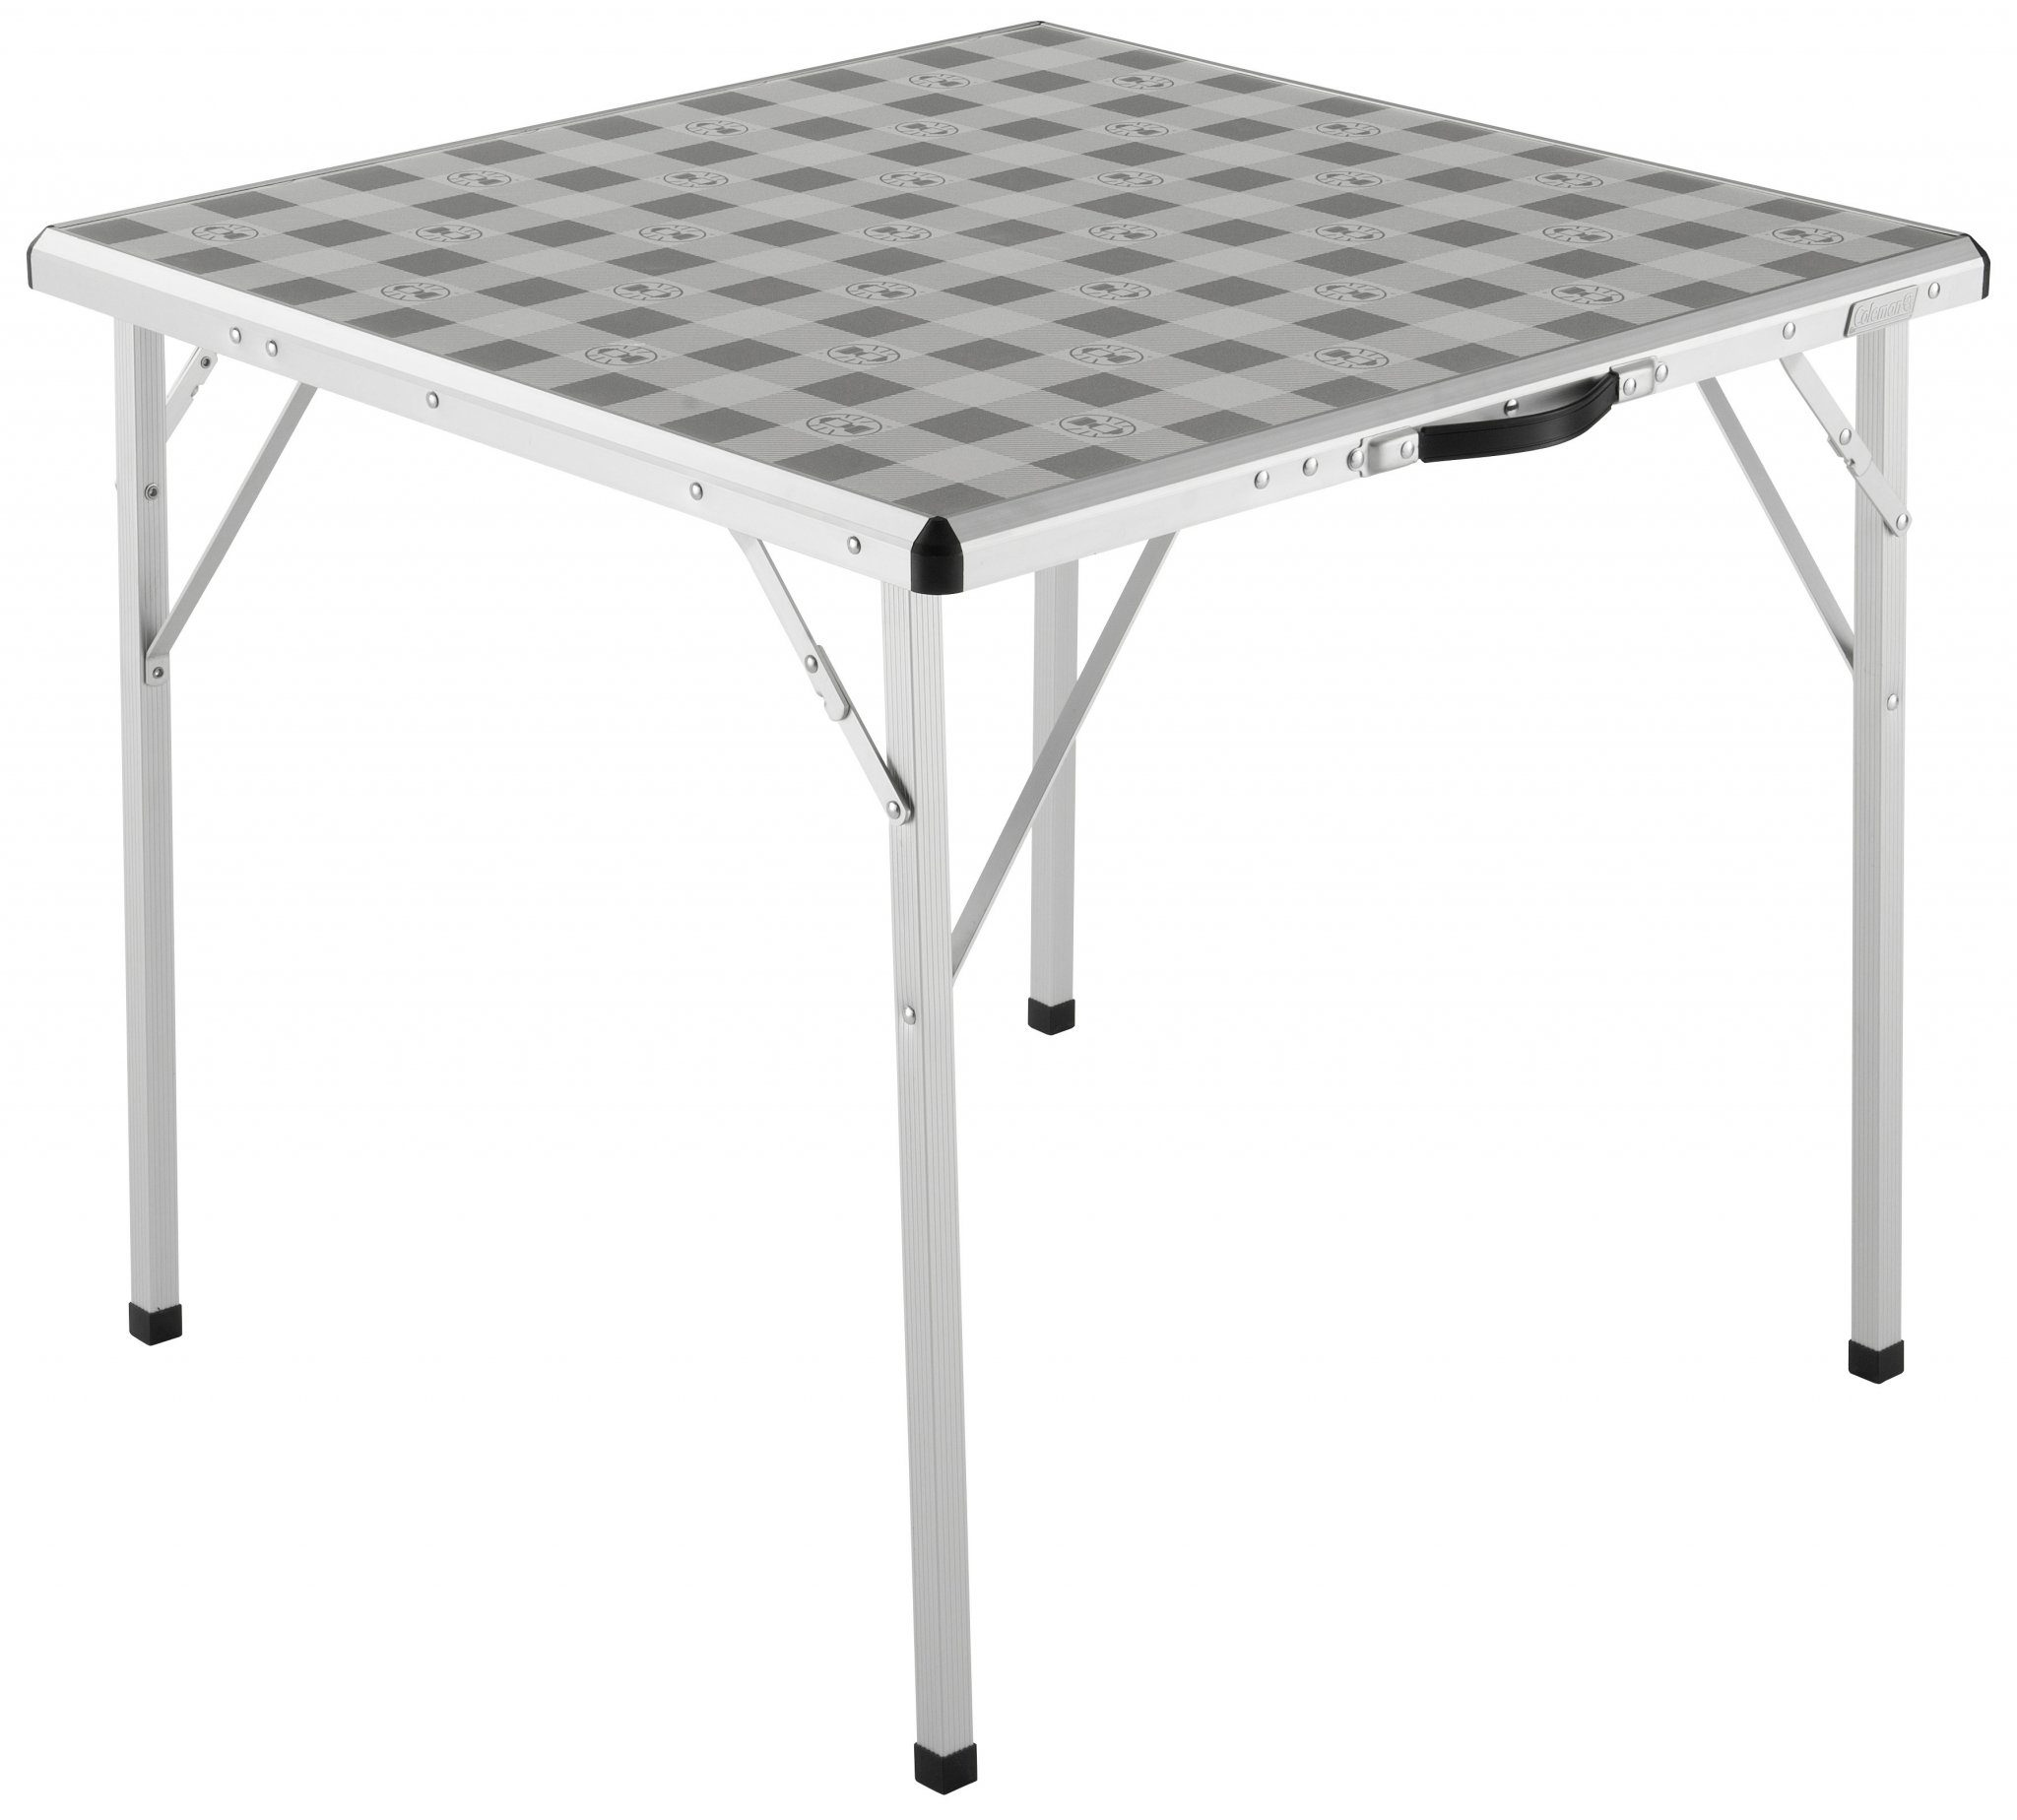 COLEMAN Camping Tisch »Camping Table«